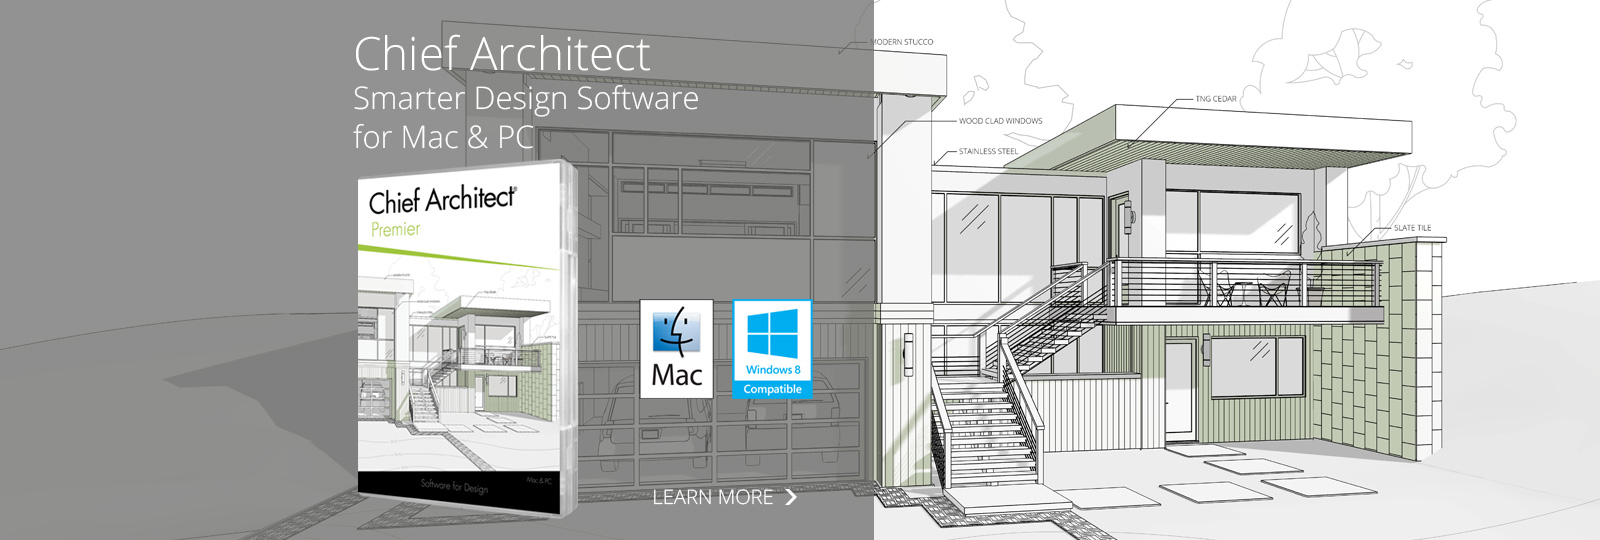 Architectural home design software by chief architect Home remodeling software